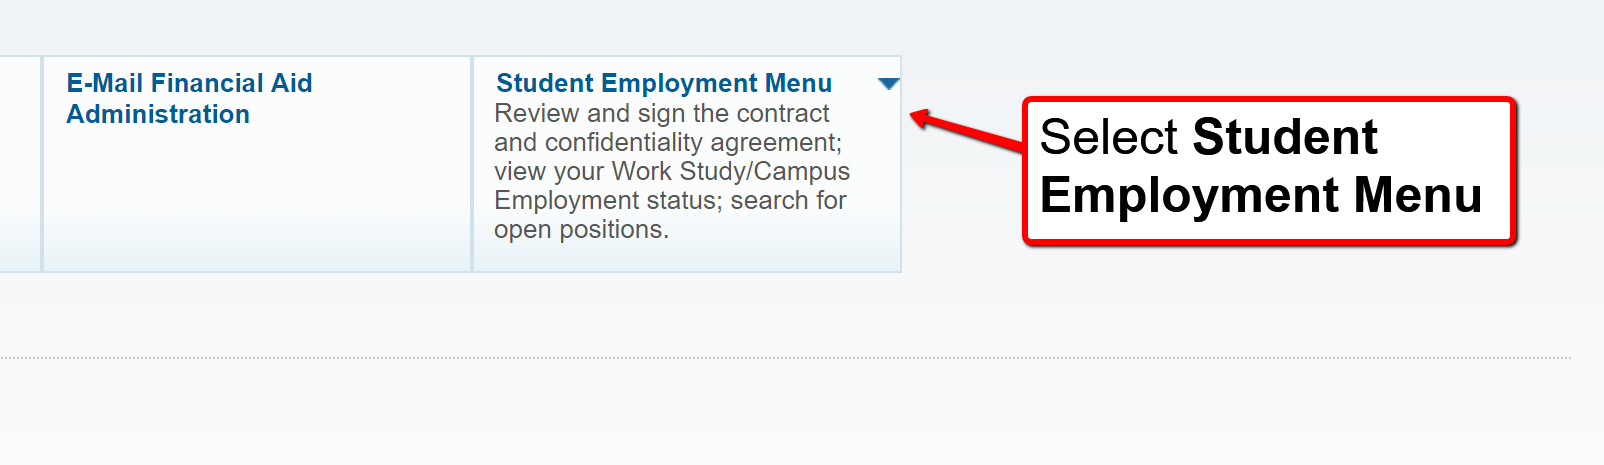 image depicting the student employment menu tab